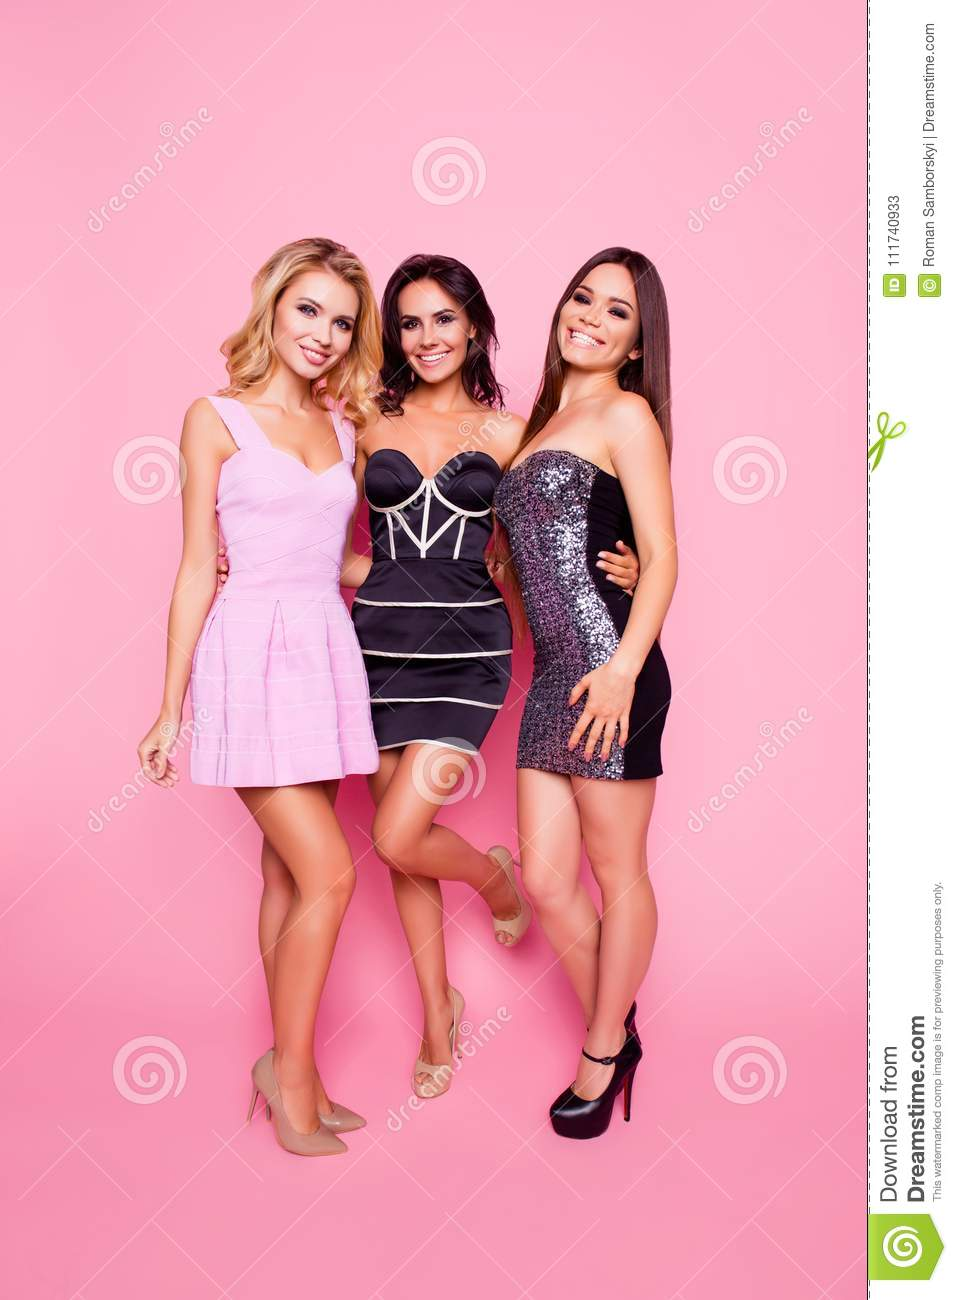 Bachelor hen party! Portrait of three cute, nice, slim, attractive girls with long legs, enjoying time together, posing for photo,